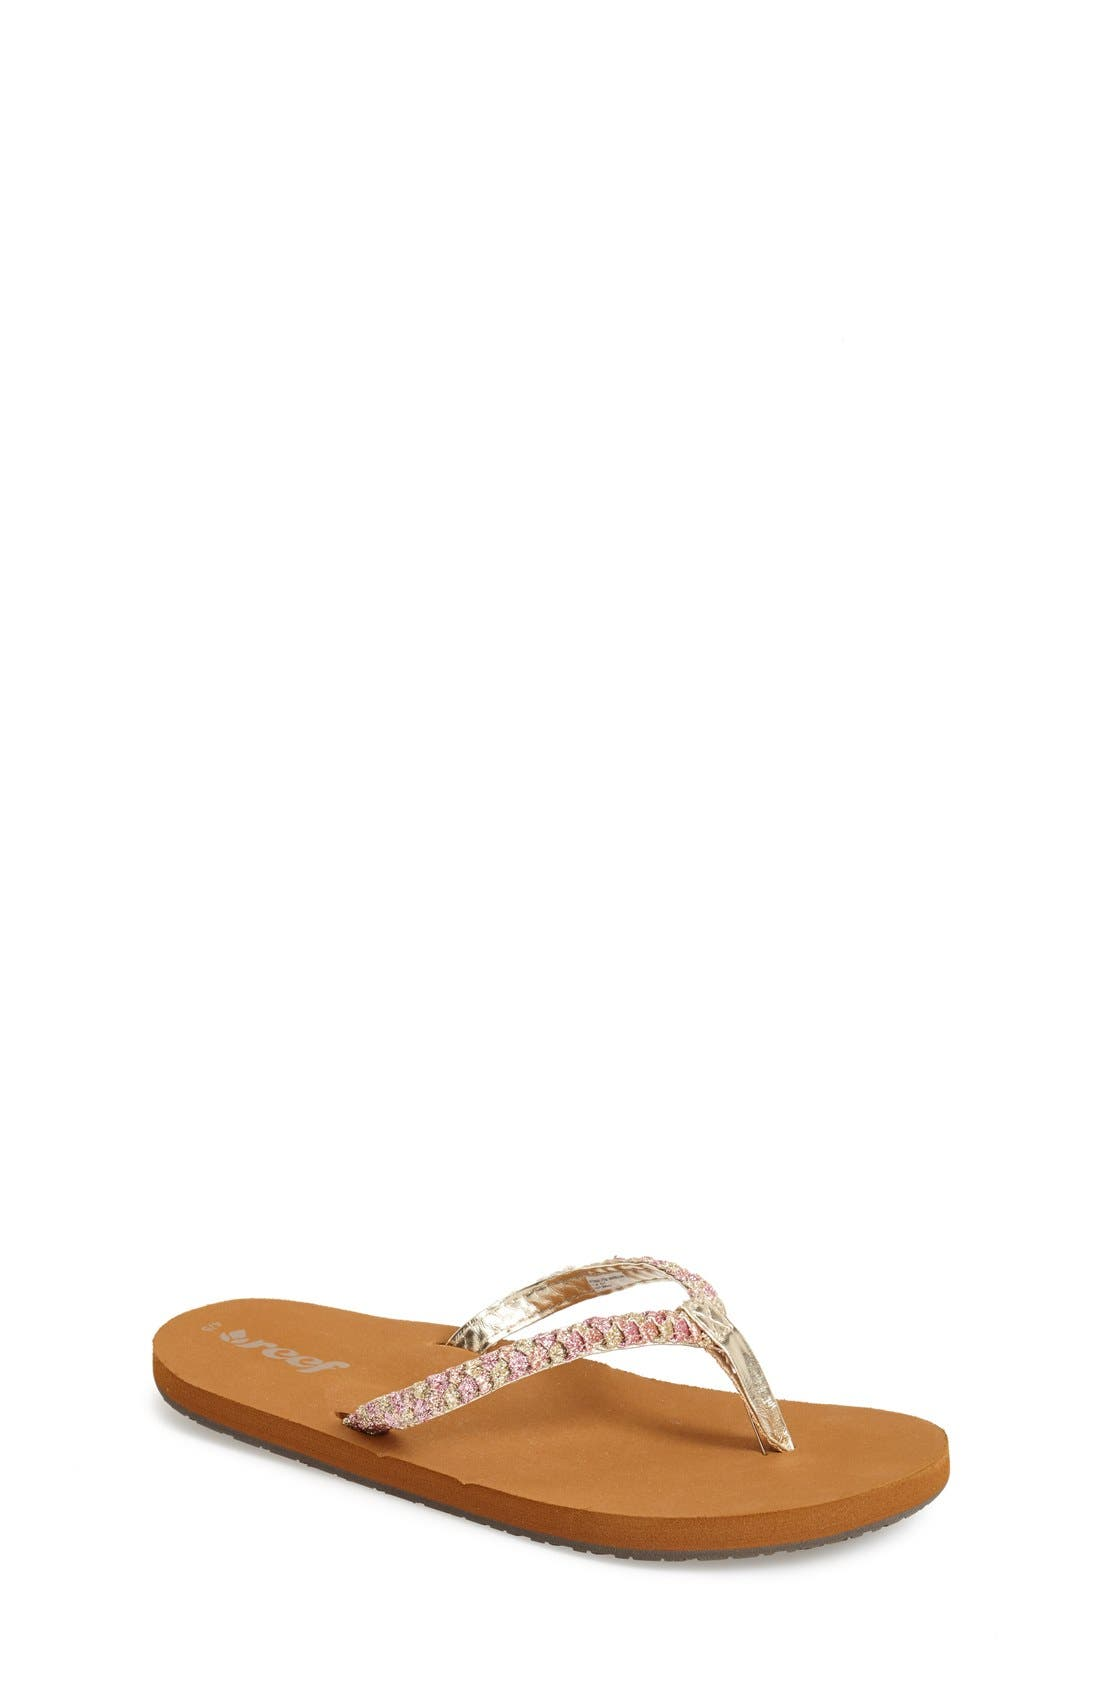 Alternate Image 1 Selected - Reef 'Little Twisted Stars' Sandal (Walker, Toddler, Little Kid & Big Kid)